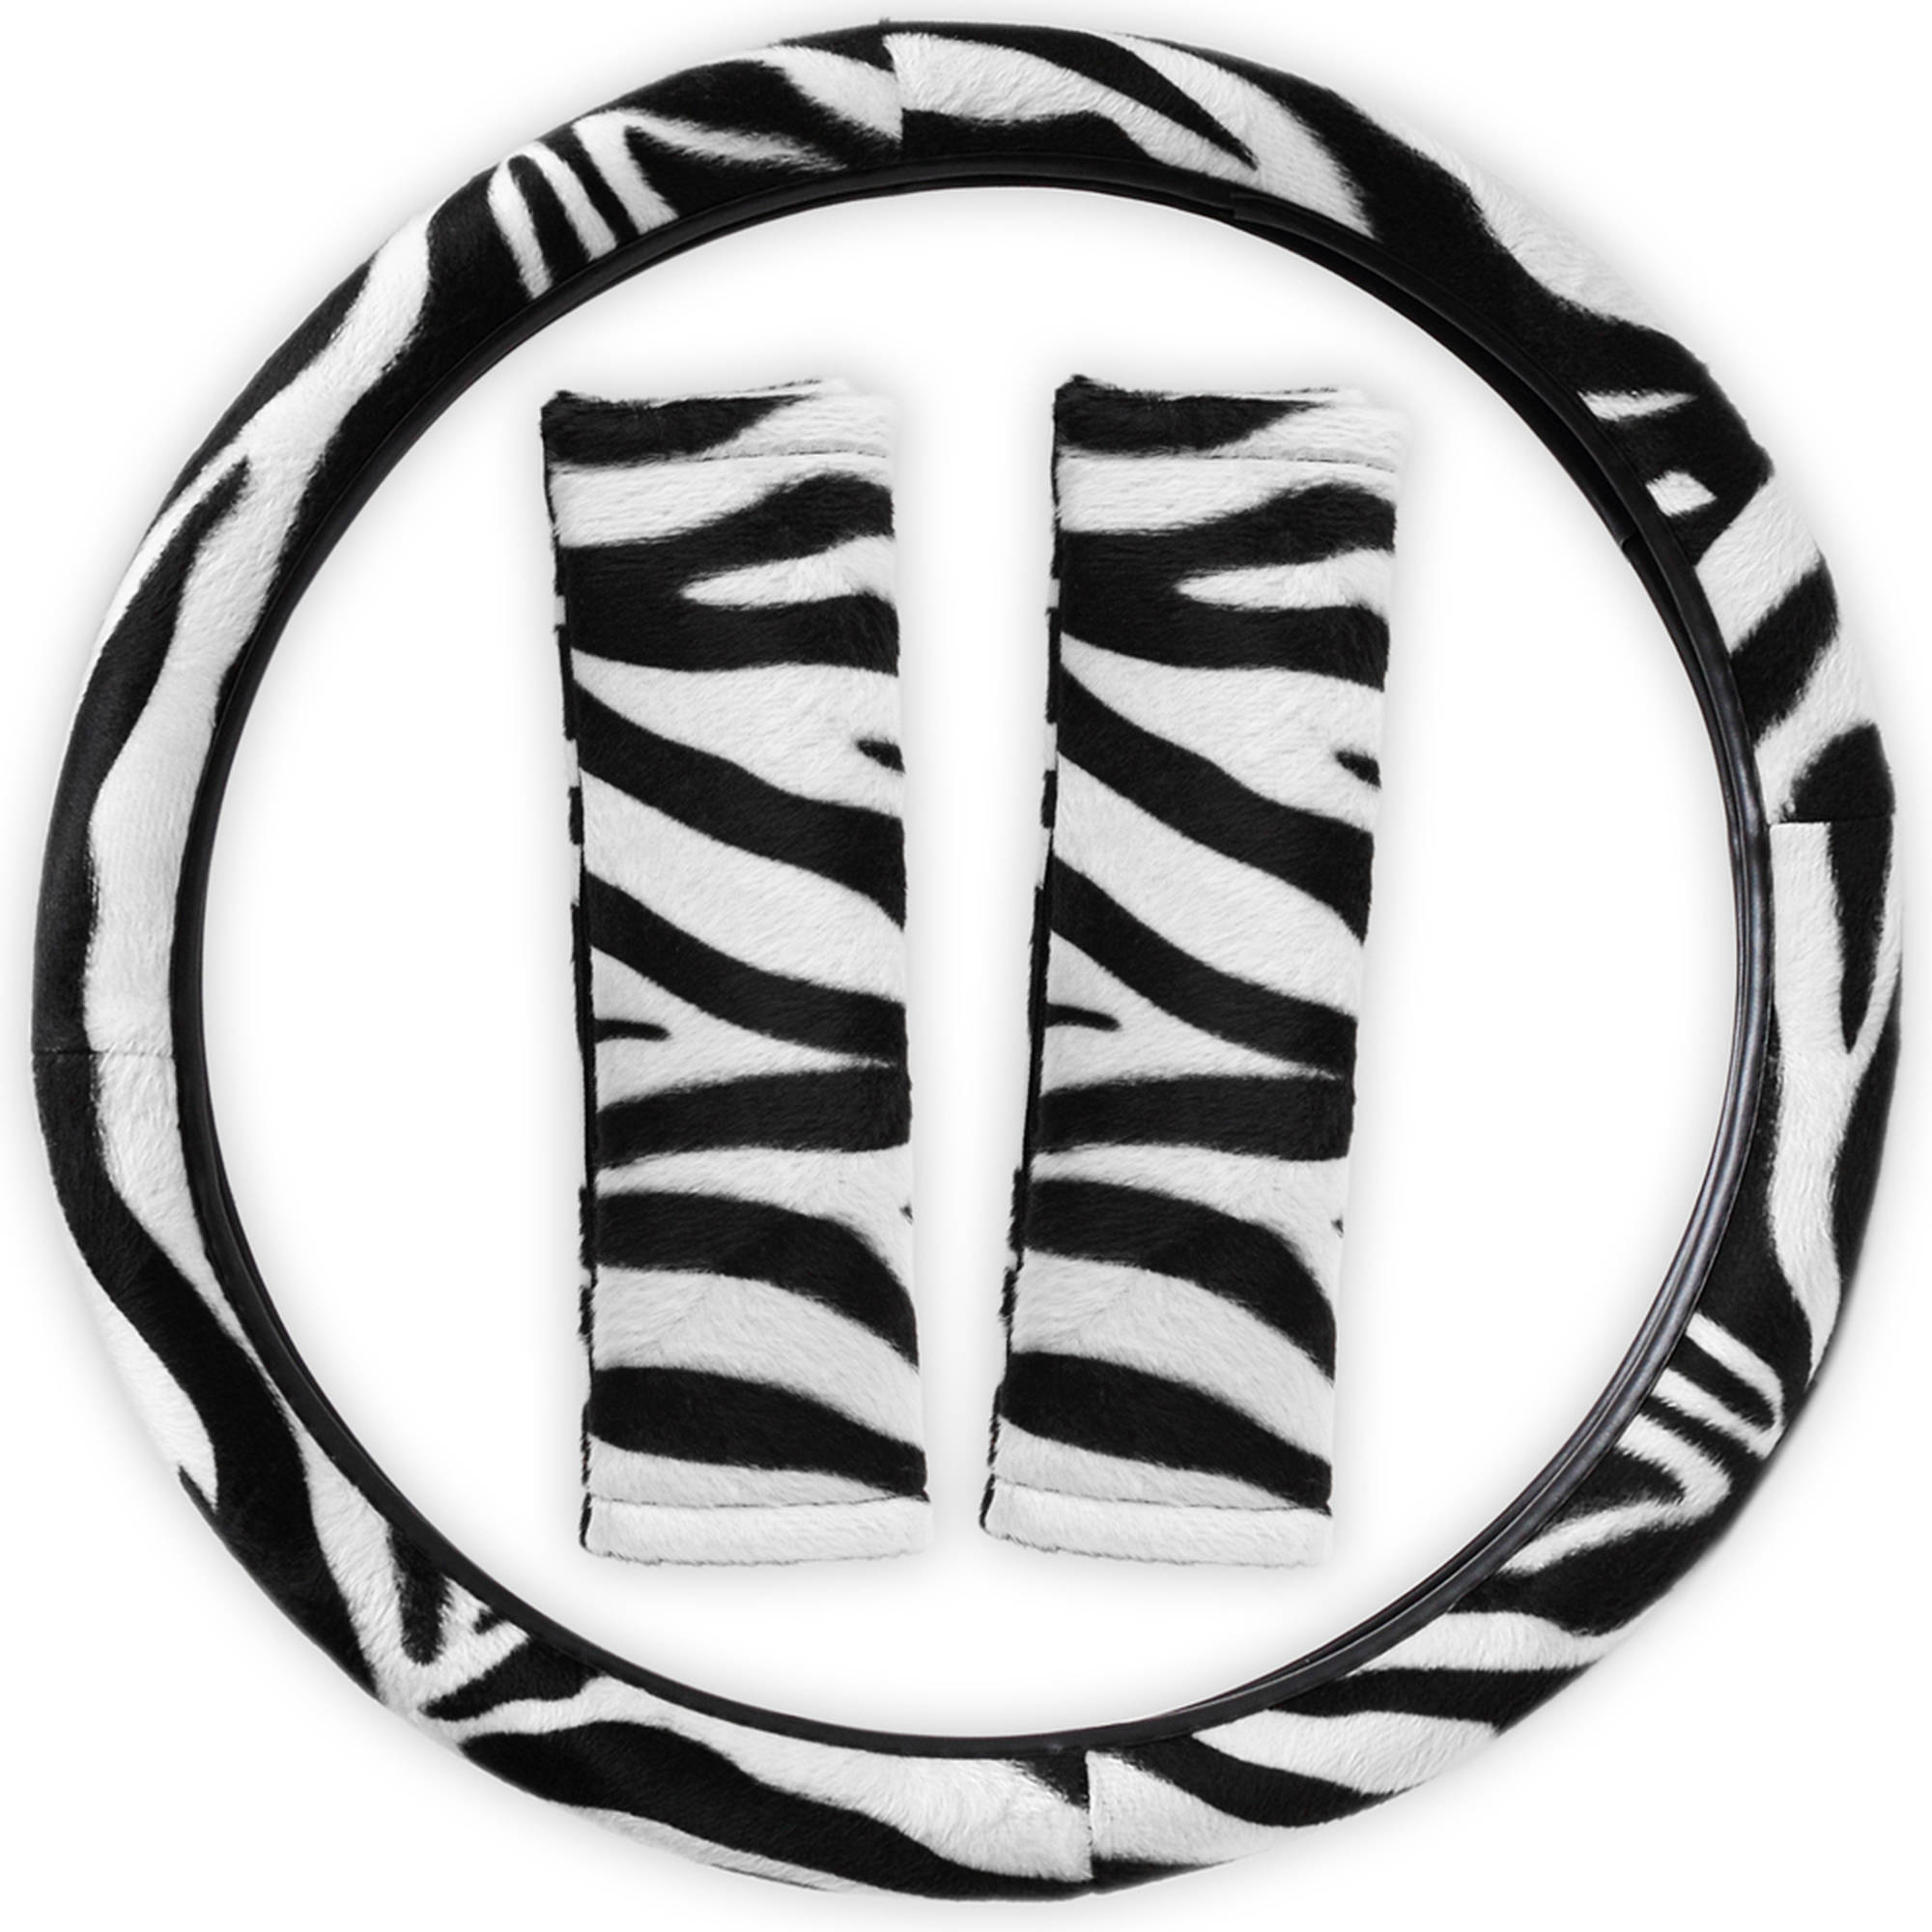 steering wheel covers walmart Dodge Ram Hellcat product image zebra print rainbow steering wheel cover universal fit for car truck van suv